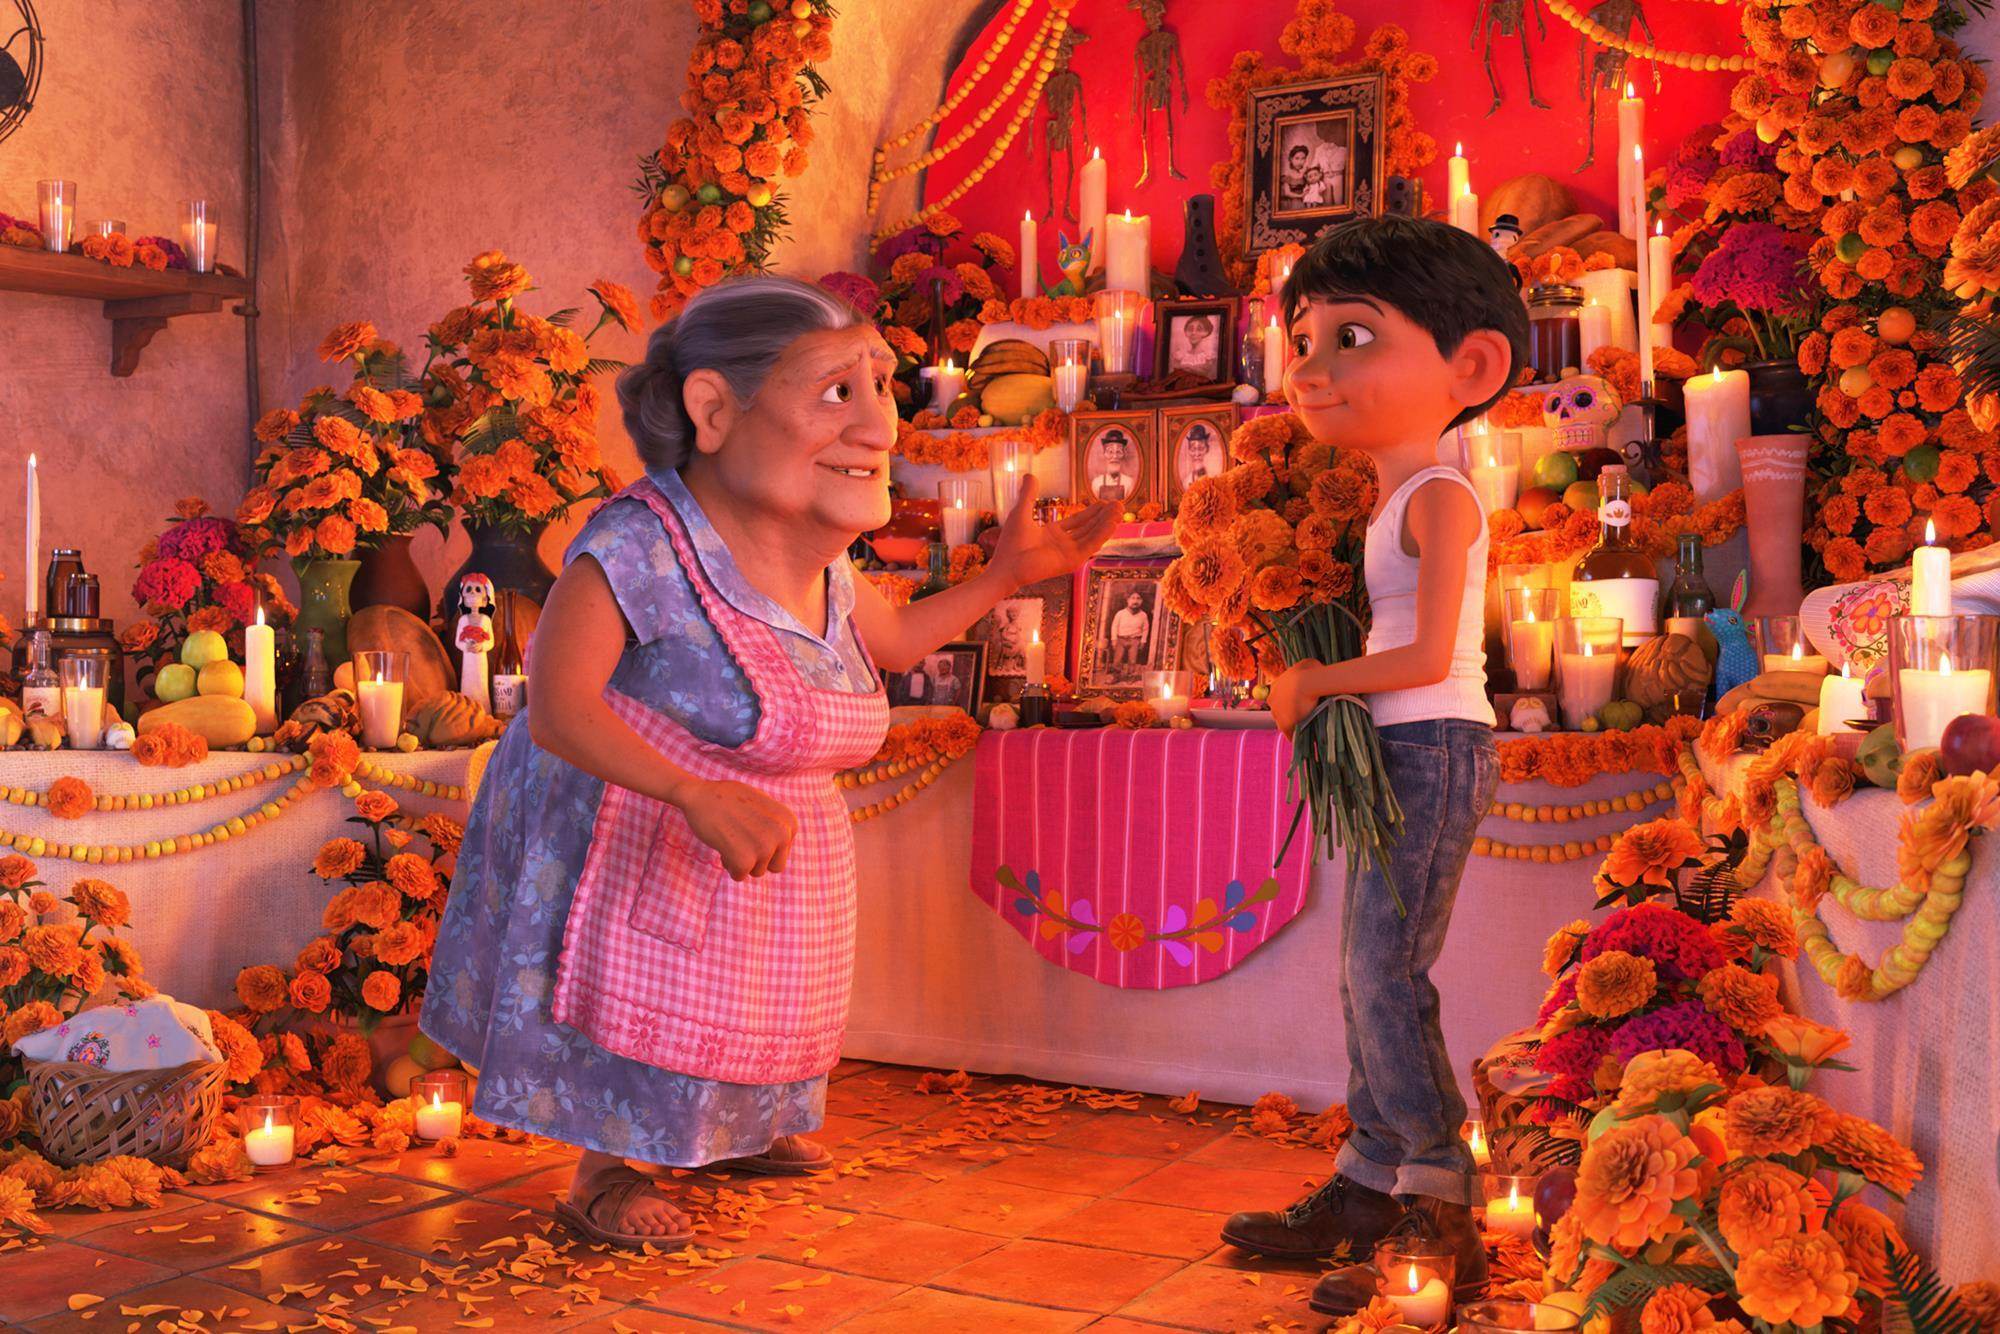 Coco out of sight at international box office on 6m session